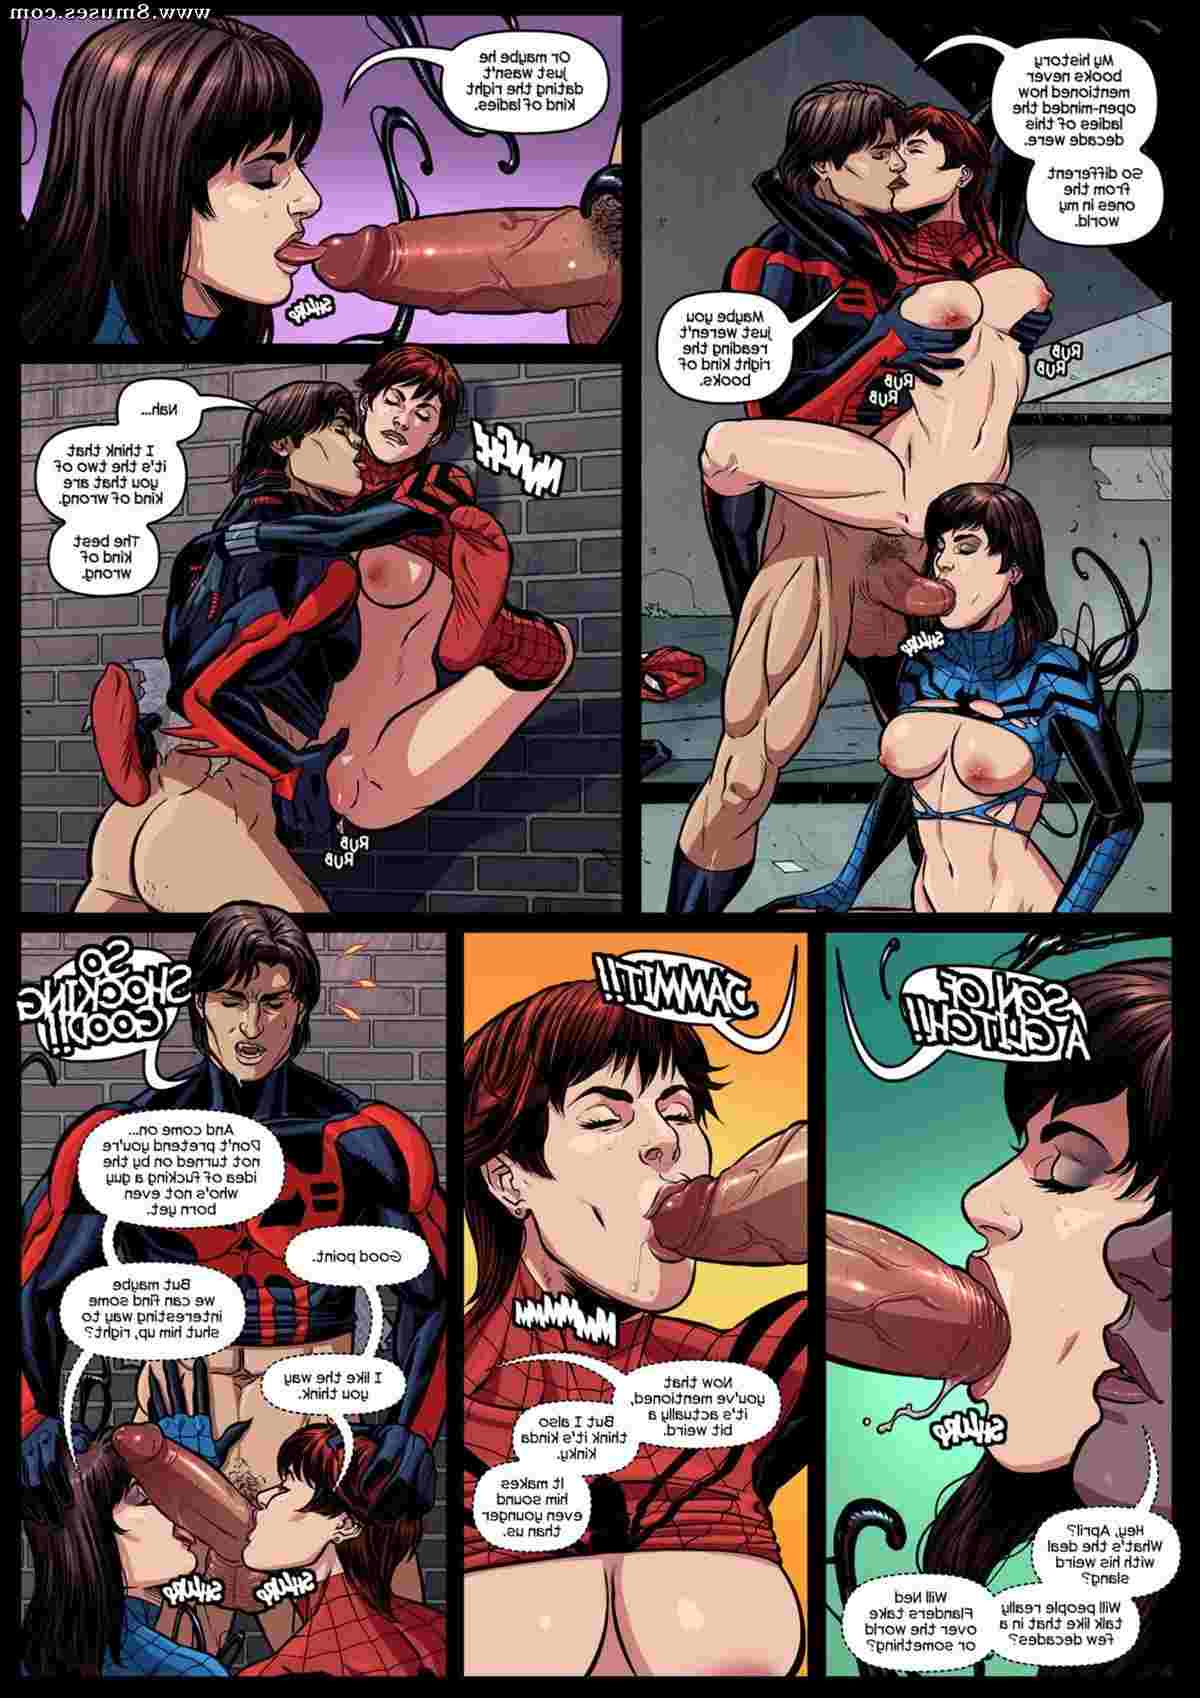 Tracy-Scops-Comics/Mayday-Spidey-2099 Mayday_Spidey_2099__8muses_-_Sex_and_Porn_Comics_7.jpg